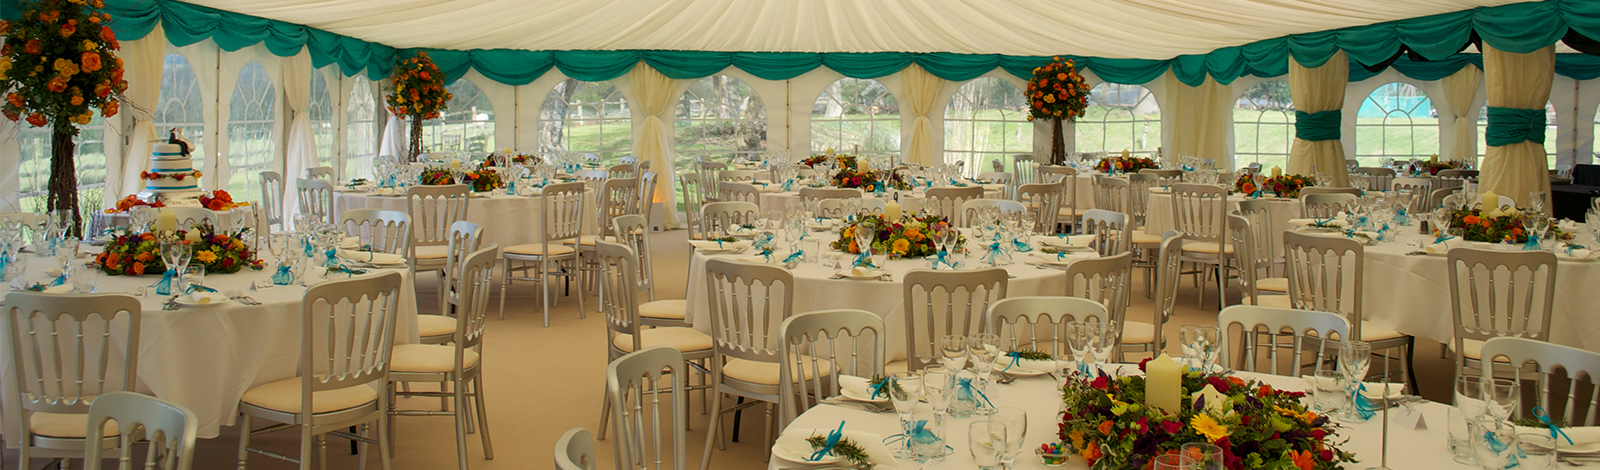 wedding-marquee-hire-kent